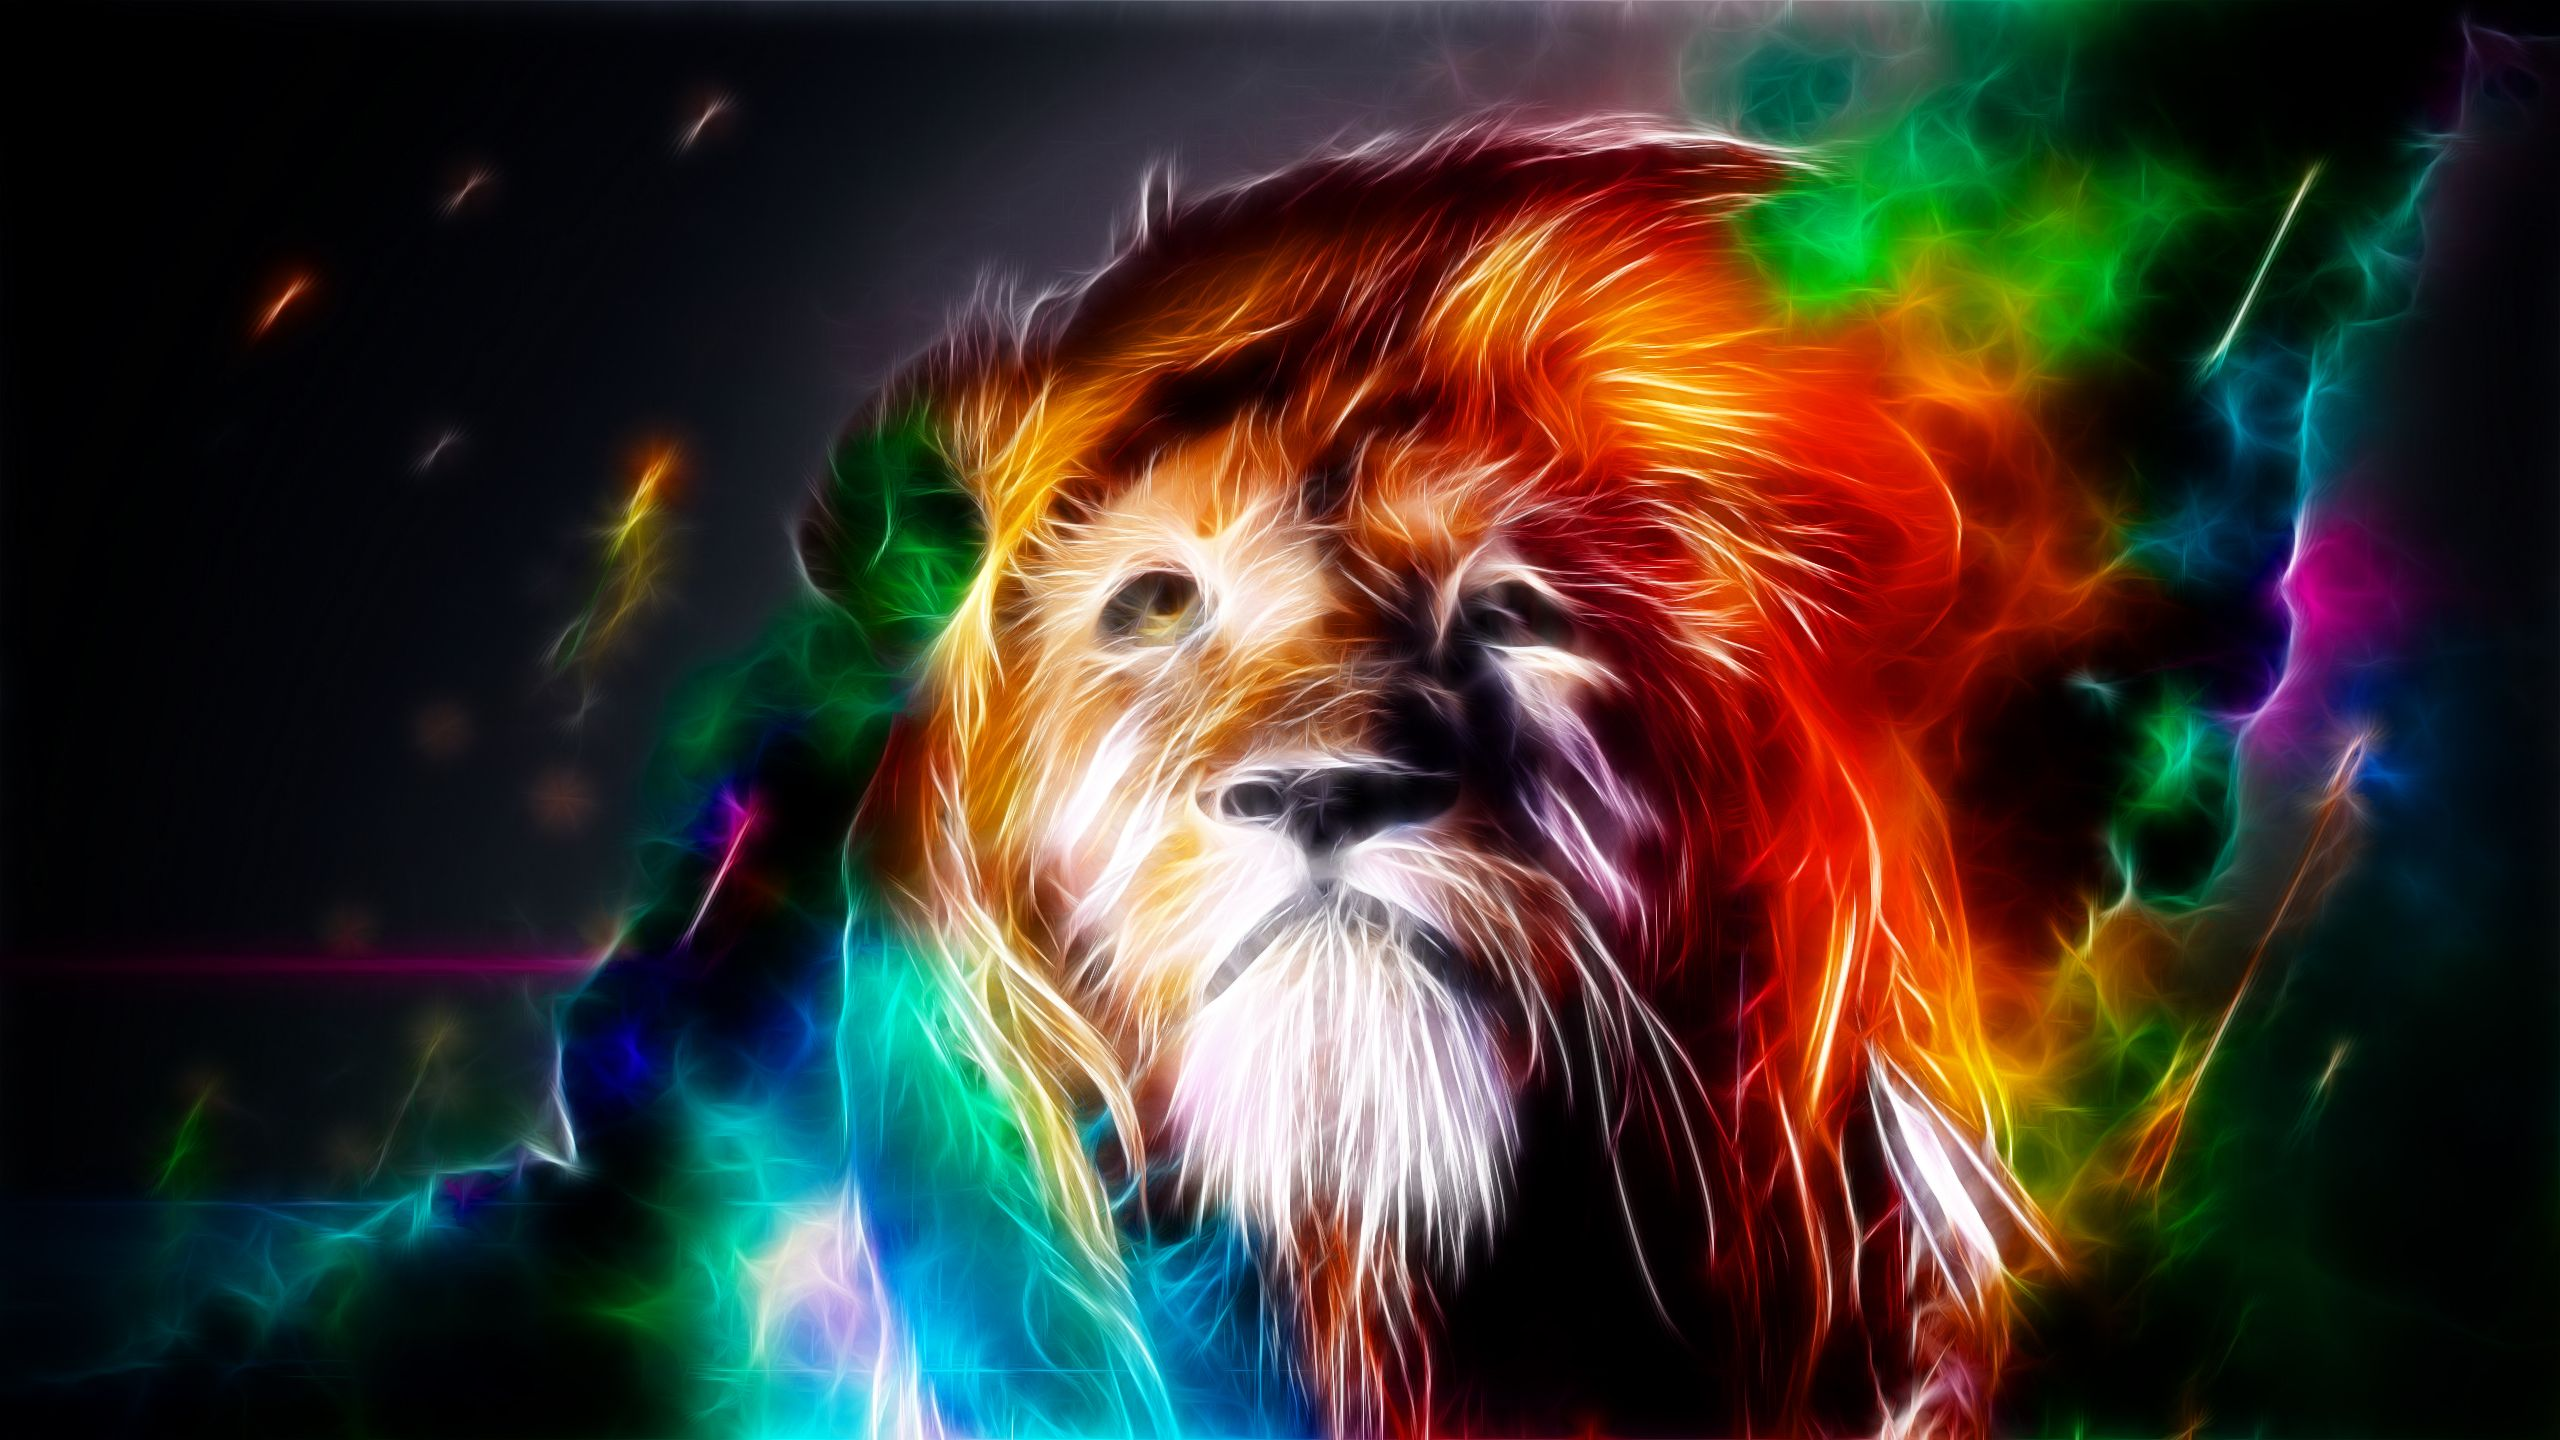 Fractal Art Lion Super Cool Picture Lion artwork, Animal